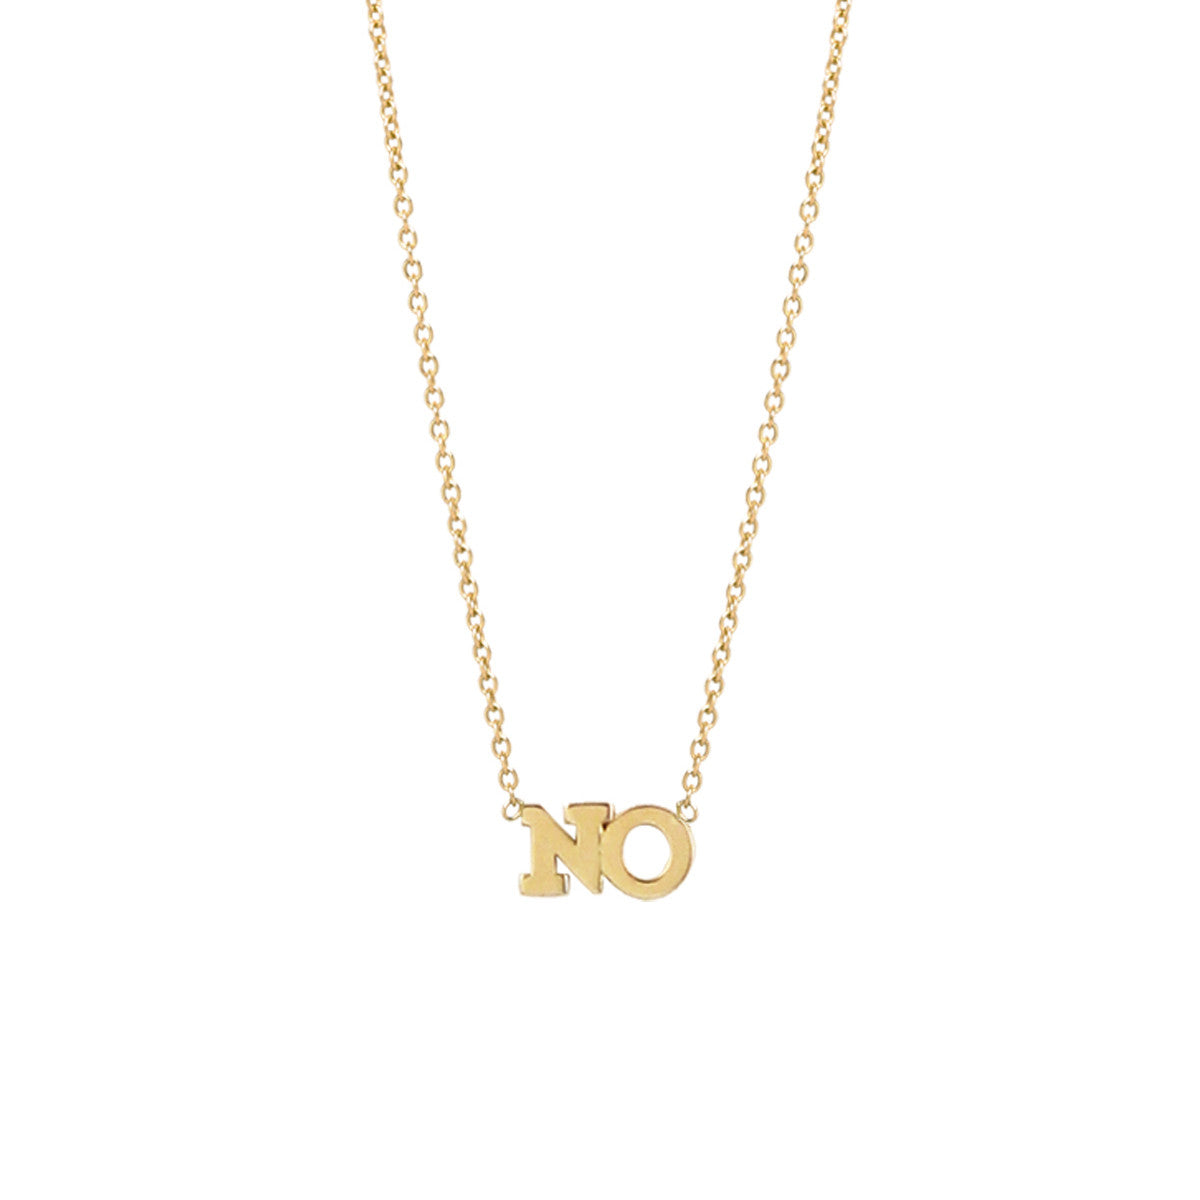 Zoë Chicco 14kt Yellow Gold 2 Letter Necklace